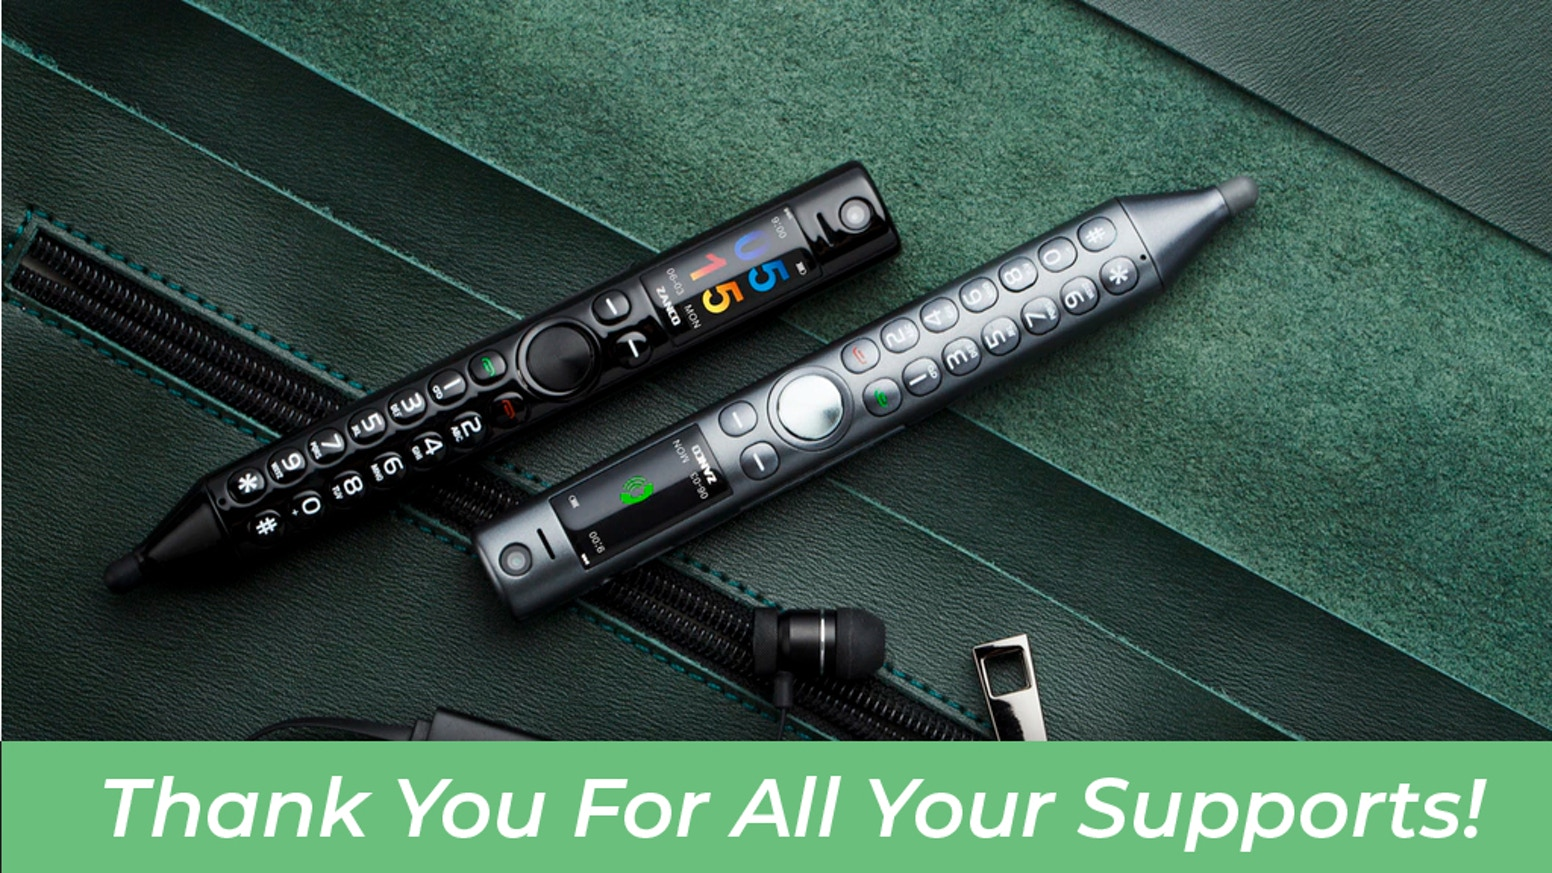 Incredibly portable, versatile, and useful, Zanco Smart Pen is a powerful combination of phone, Bluetooth headset, stylus pen.